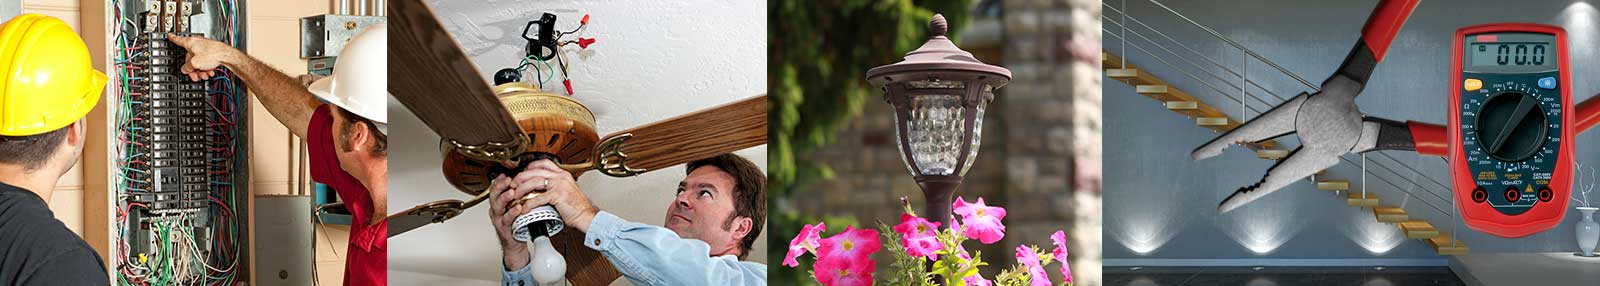 electricians repairing and installing electrical fixtures